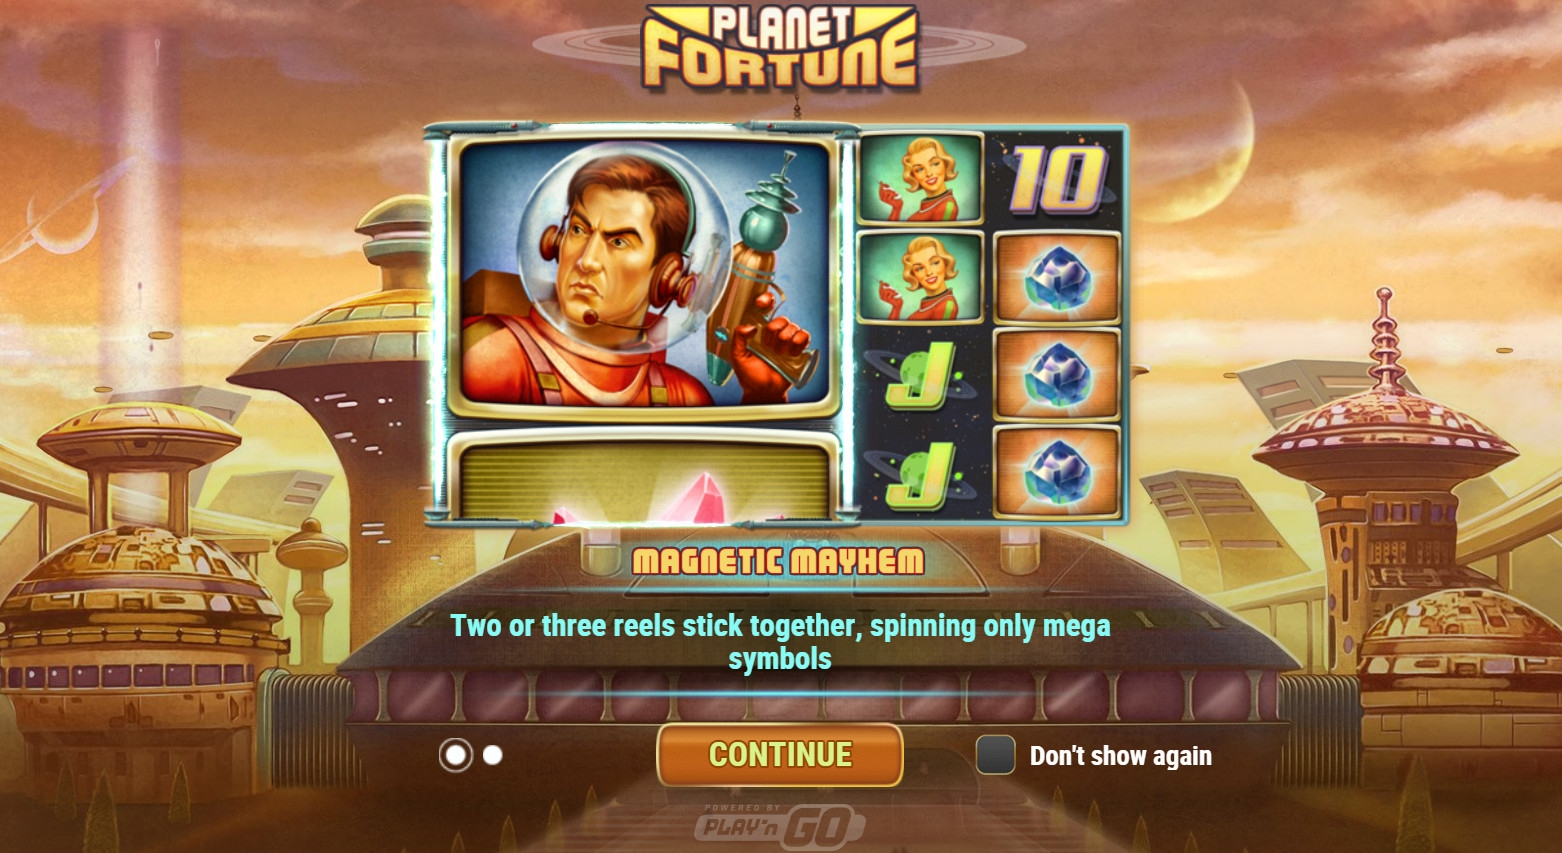 Planet Fortune video slot